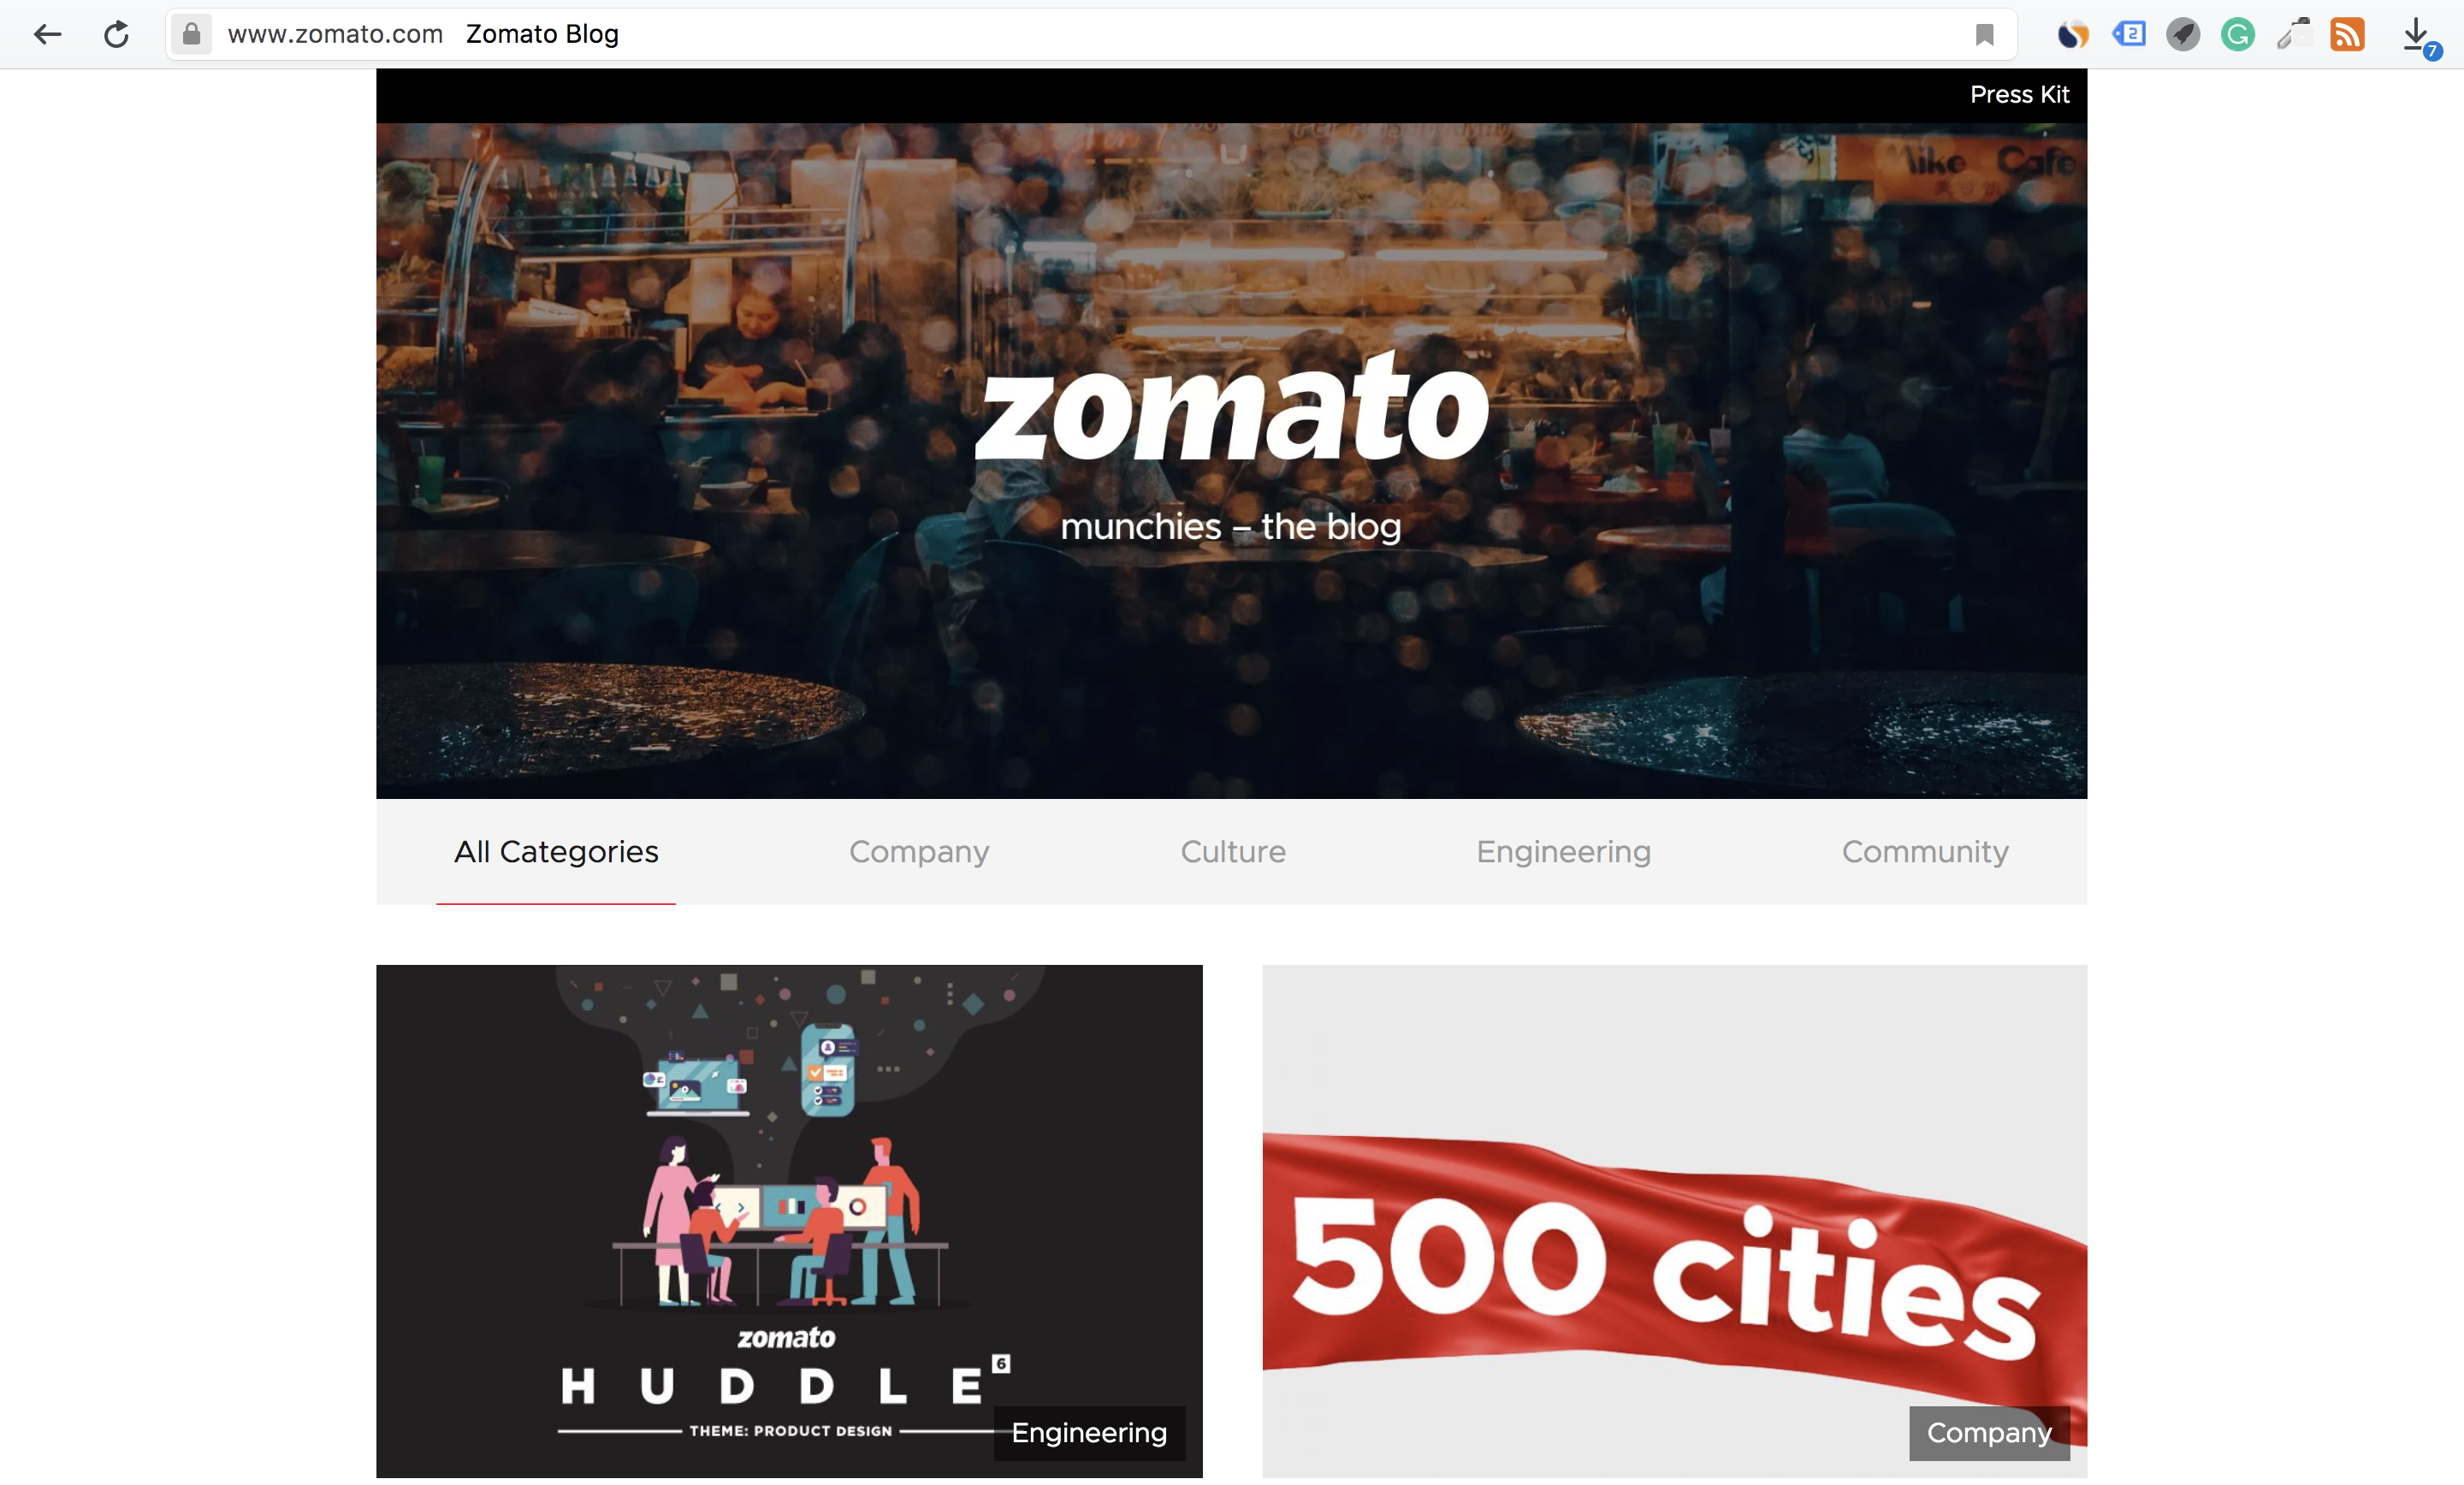 Restaurant Blogs - Zomato